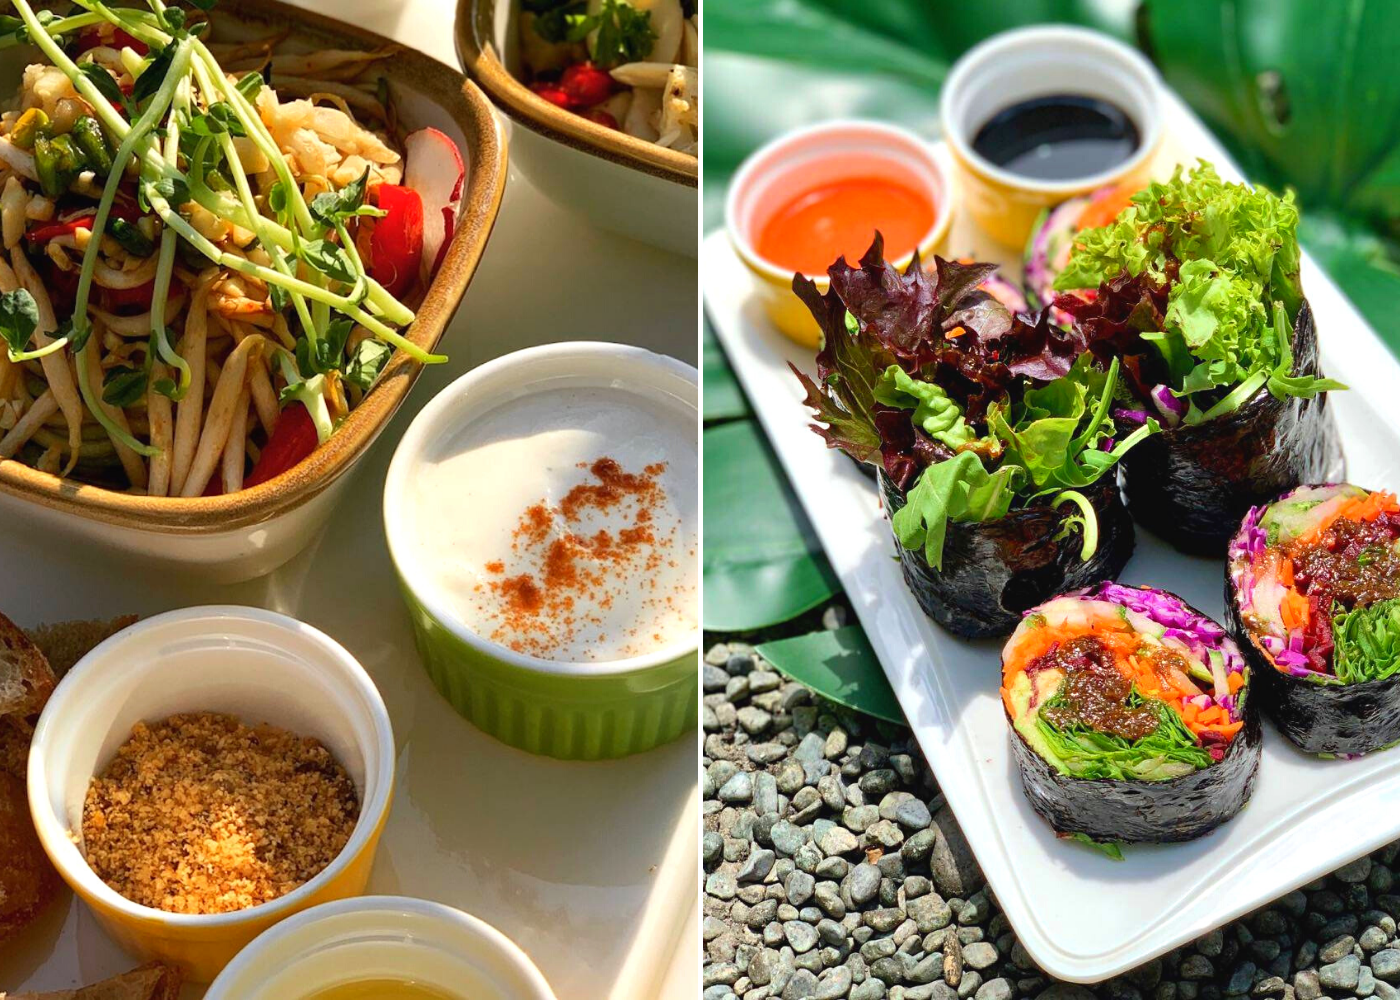 Where to find vegan food in Singapore: The Living Cafe